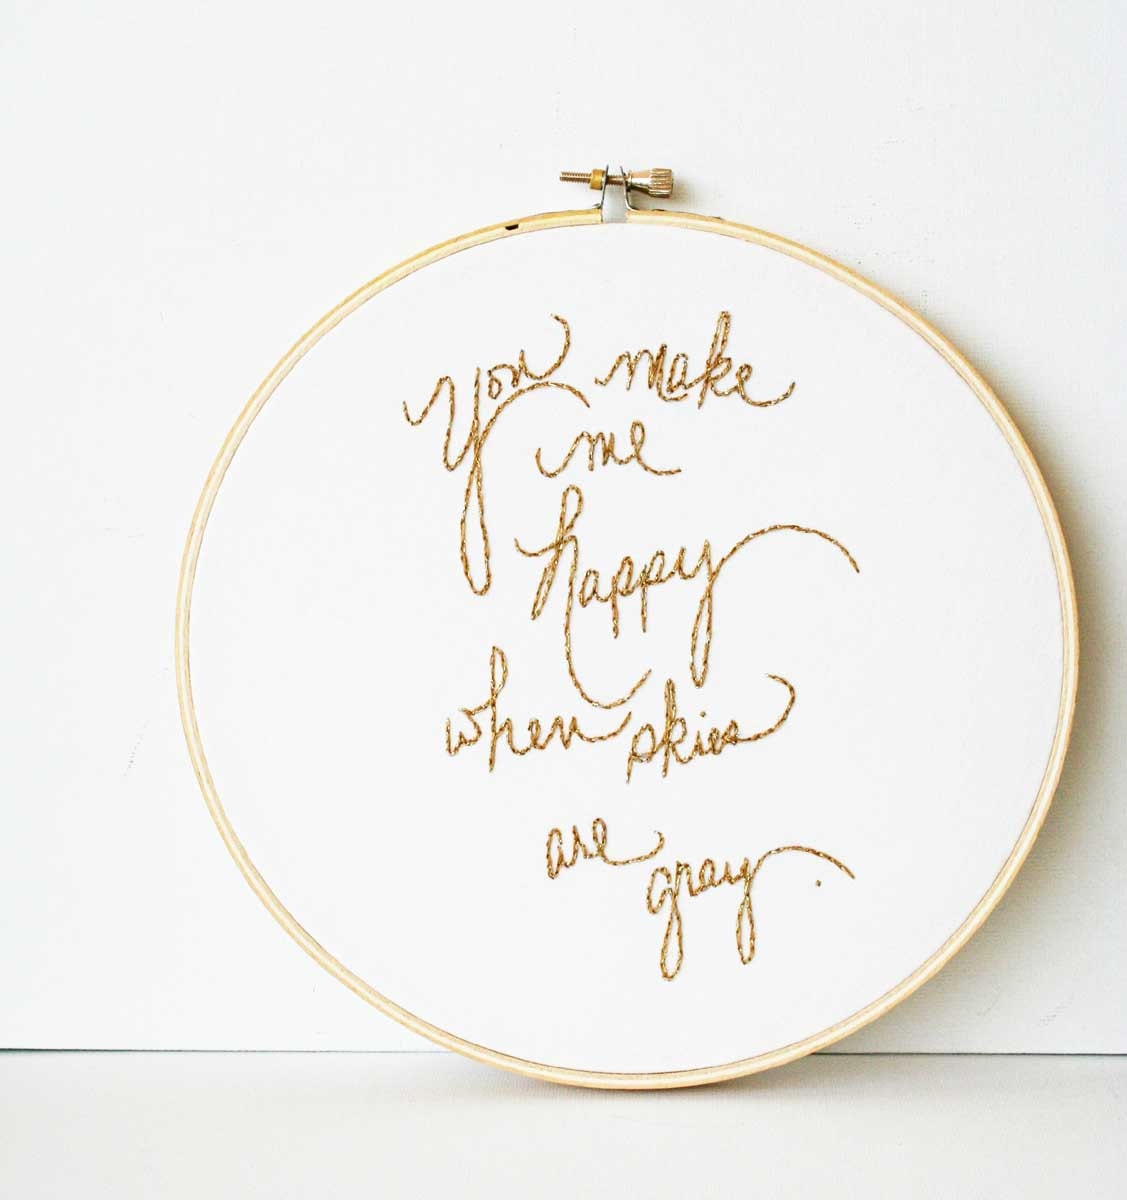 Embroidery Quotes Embroidery Sayings Quotes Quotesgram Hpg